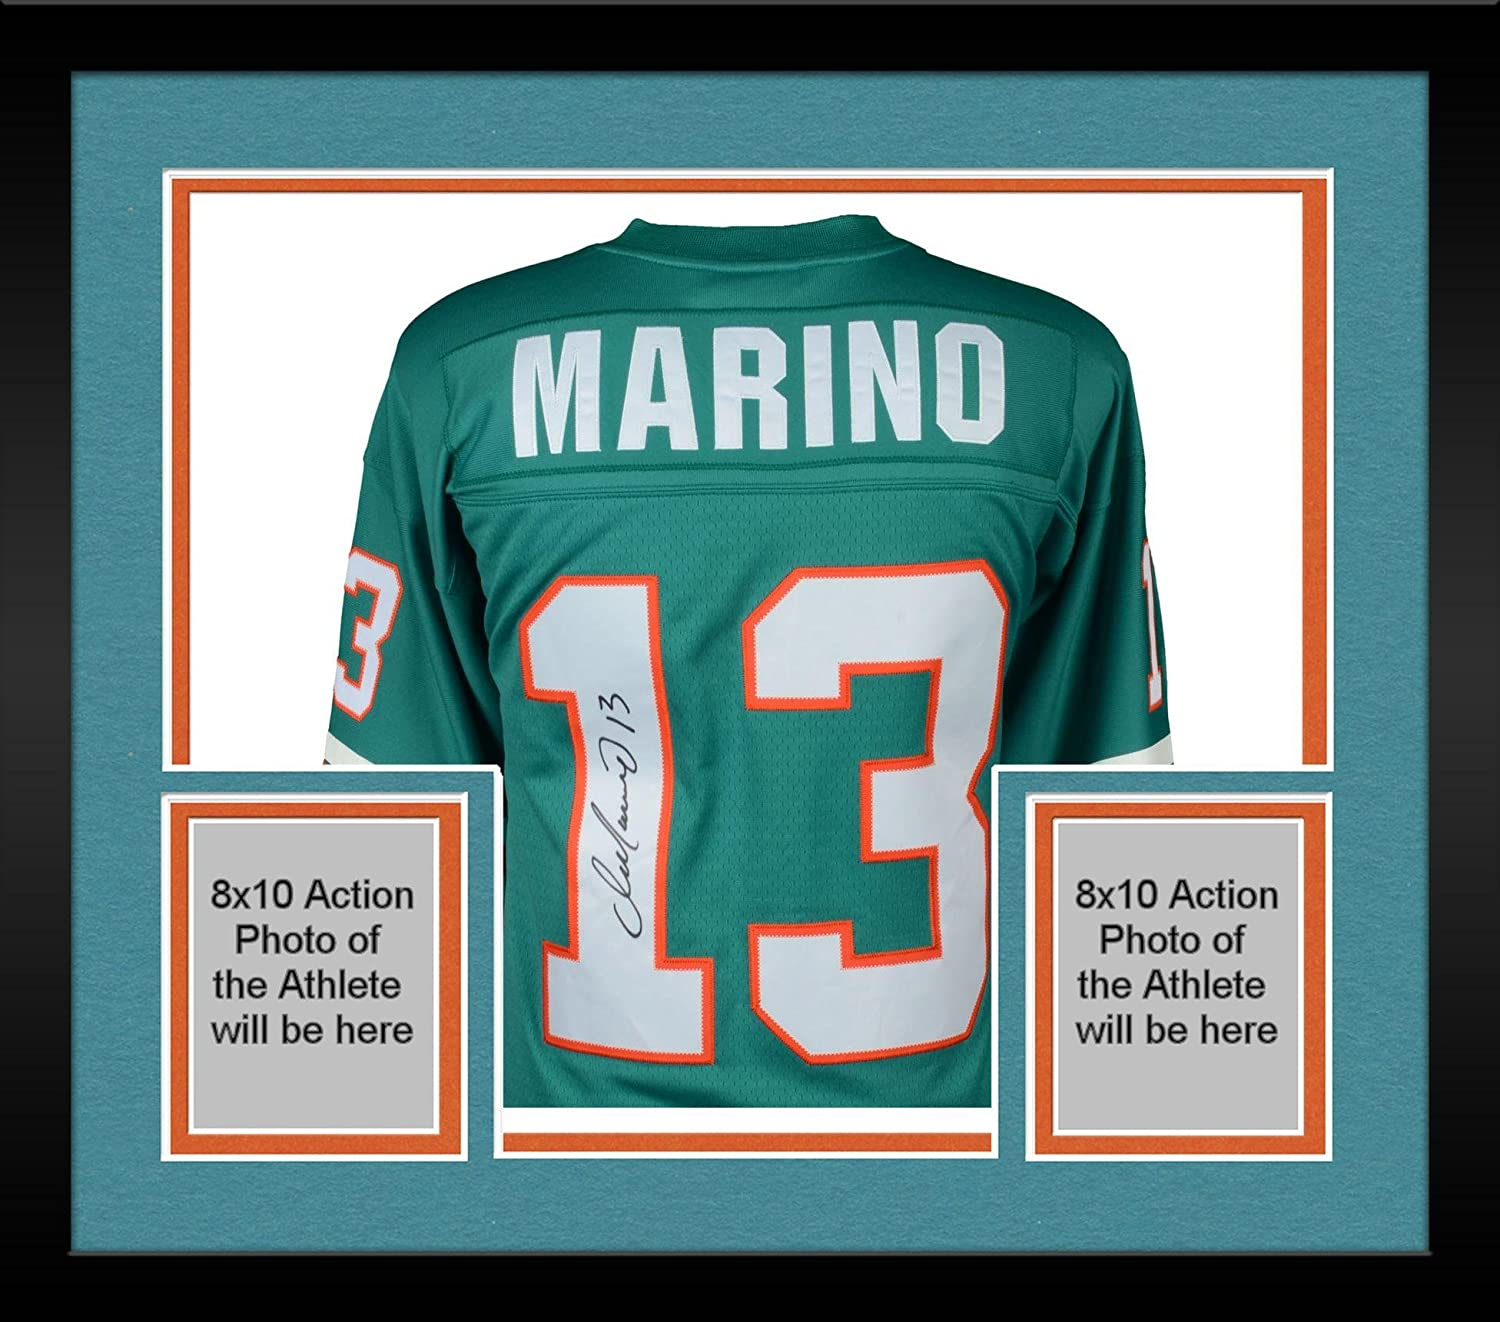 Framed Dan Marino Miami Dolphins Autographed Mitchell & Ness Teal Replica Jersey - Autographed NFL Jerseys